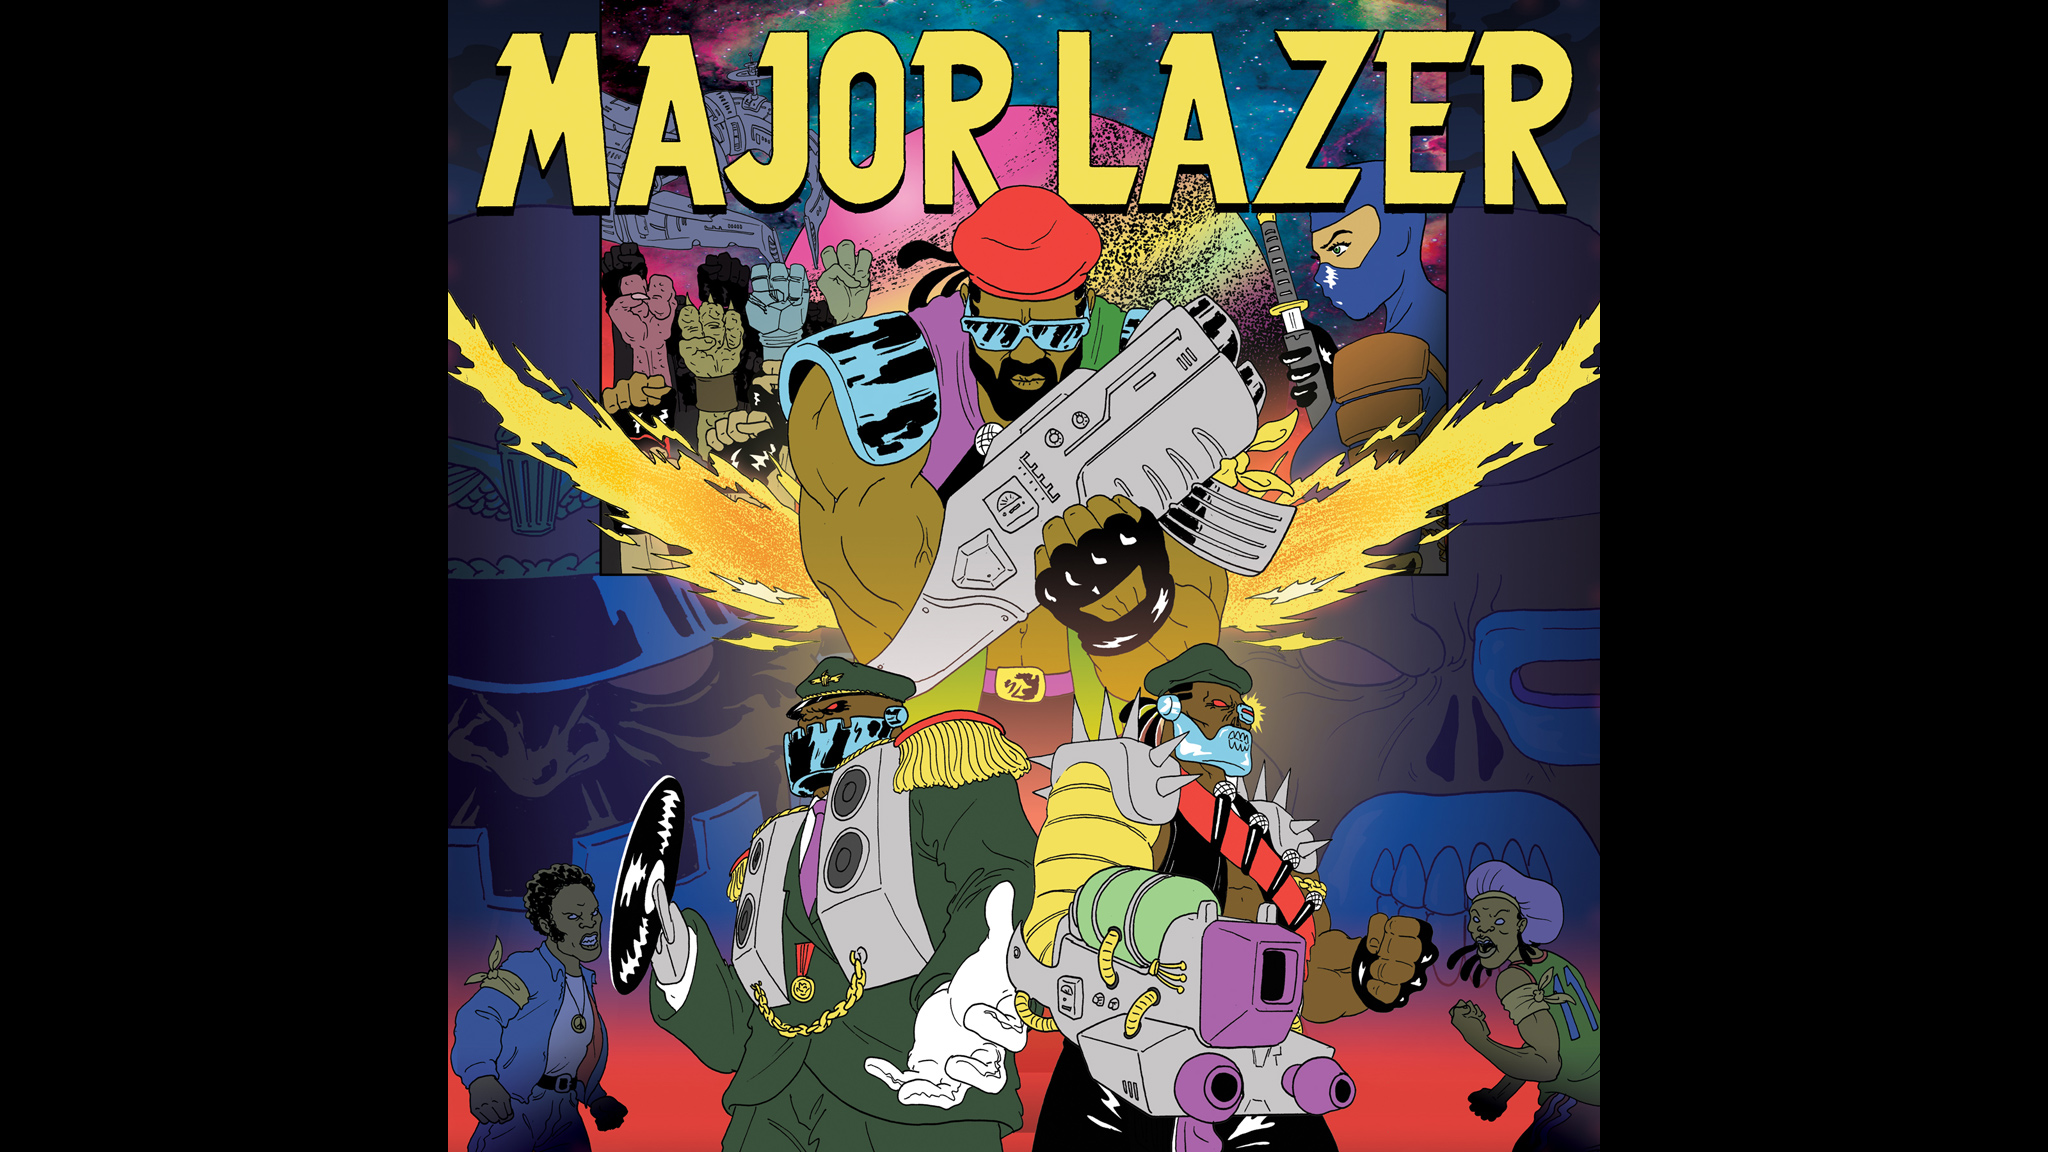 The eponymous stylings of Major Lazer.